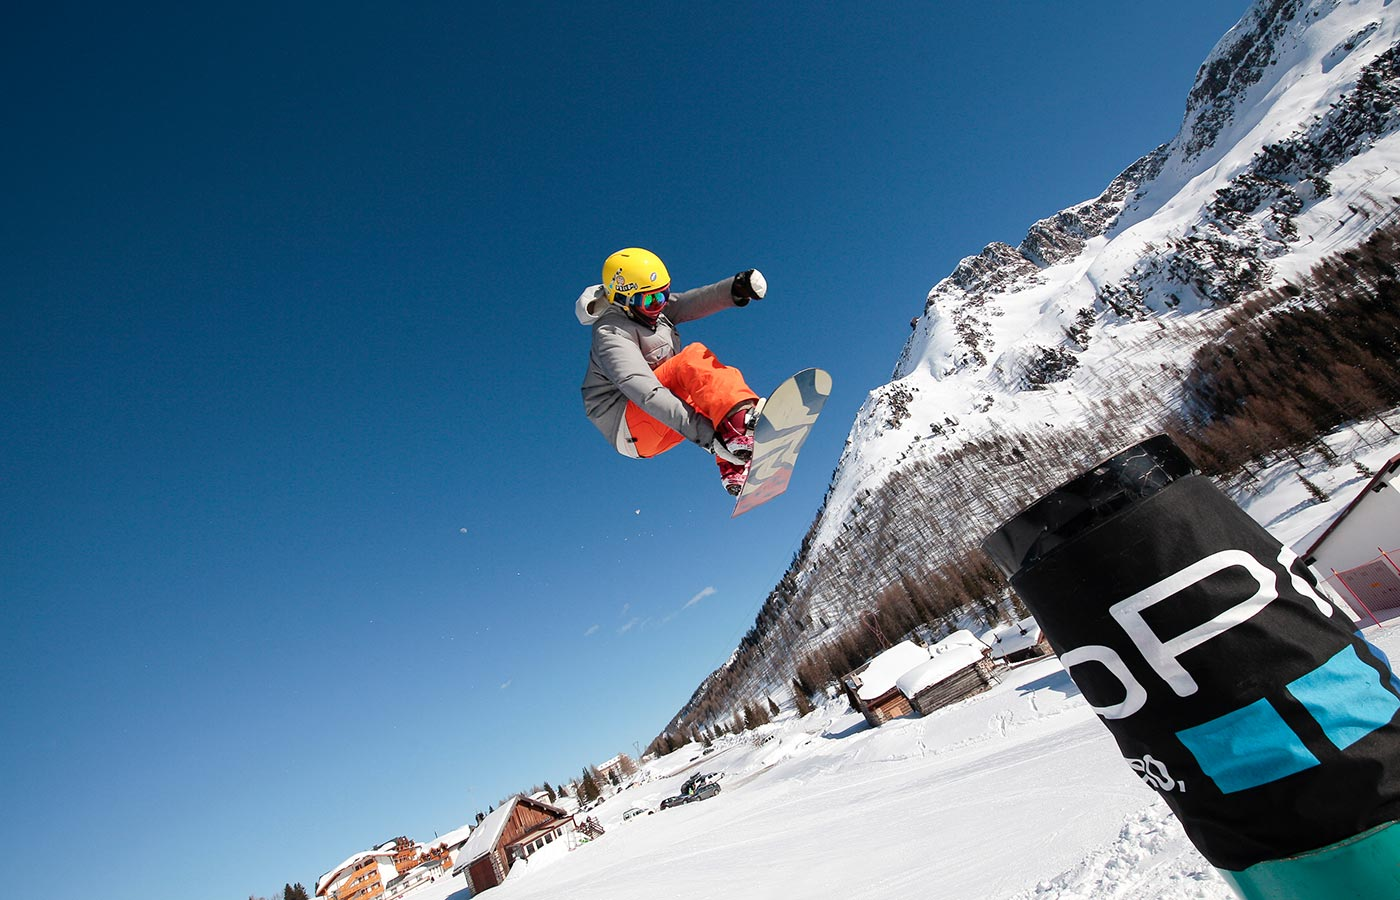 Snowboarder performs jumps and performances in Val di Fassa